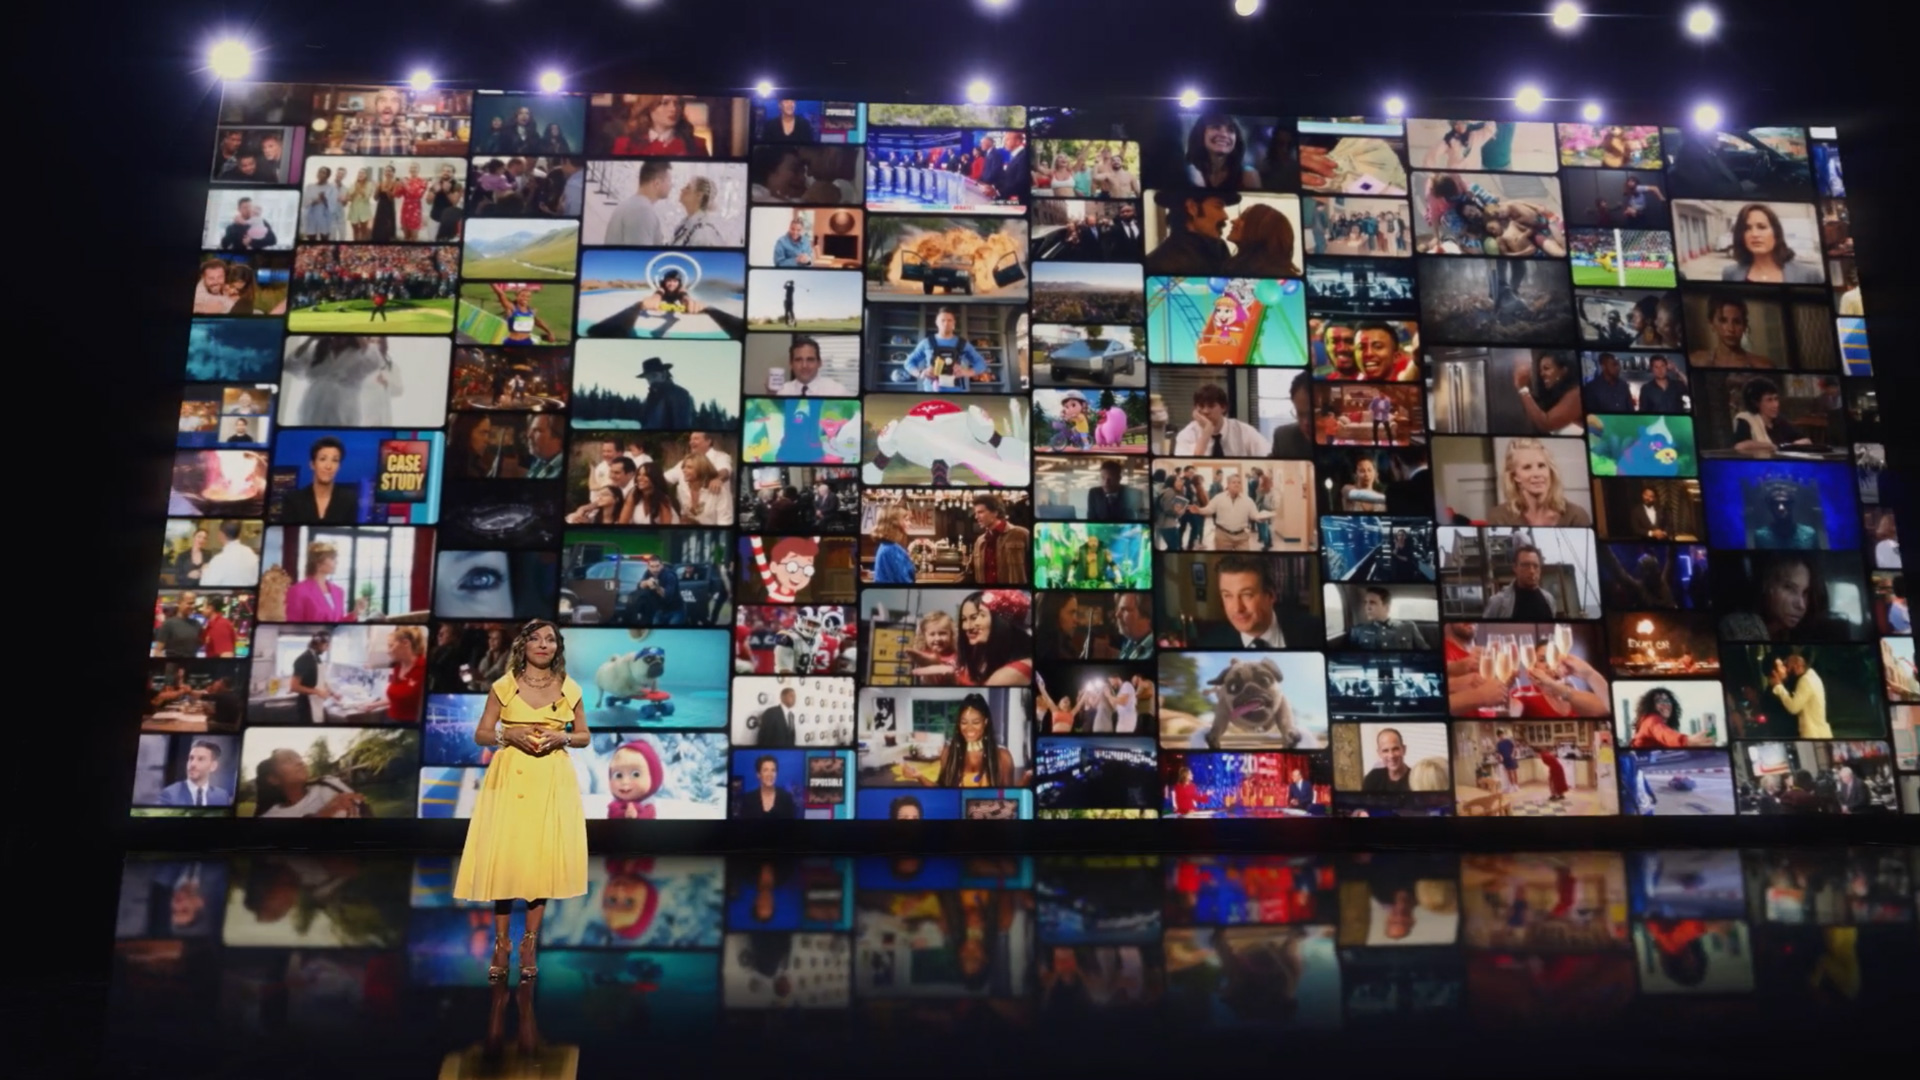 Linda Yaccarino, NBCUniversal's chairman of global advertising and partnerships, appears in front of a screen that has a mosaic of NBCUniversal programming images.